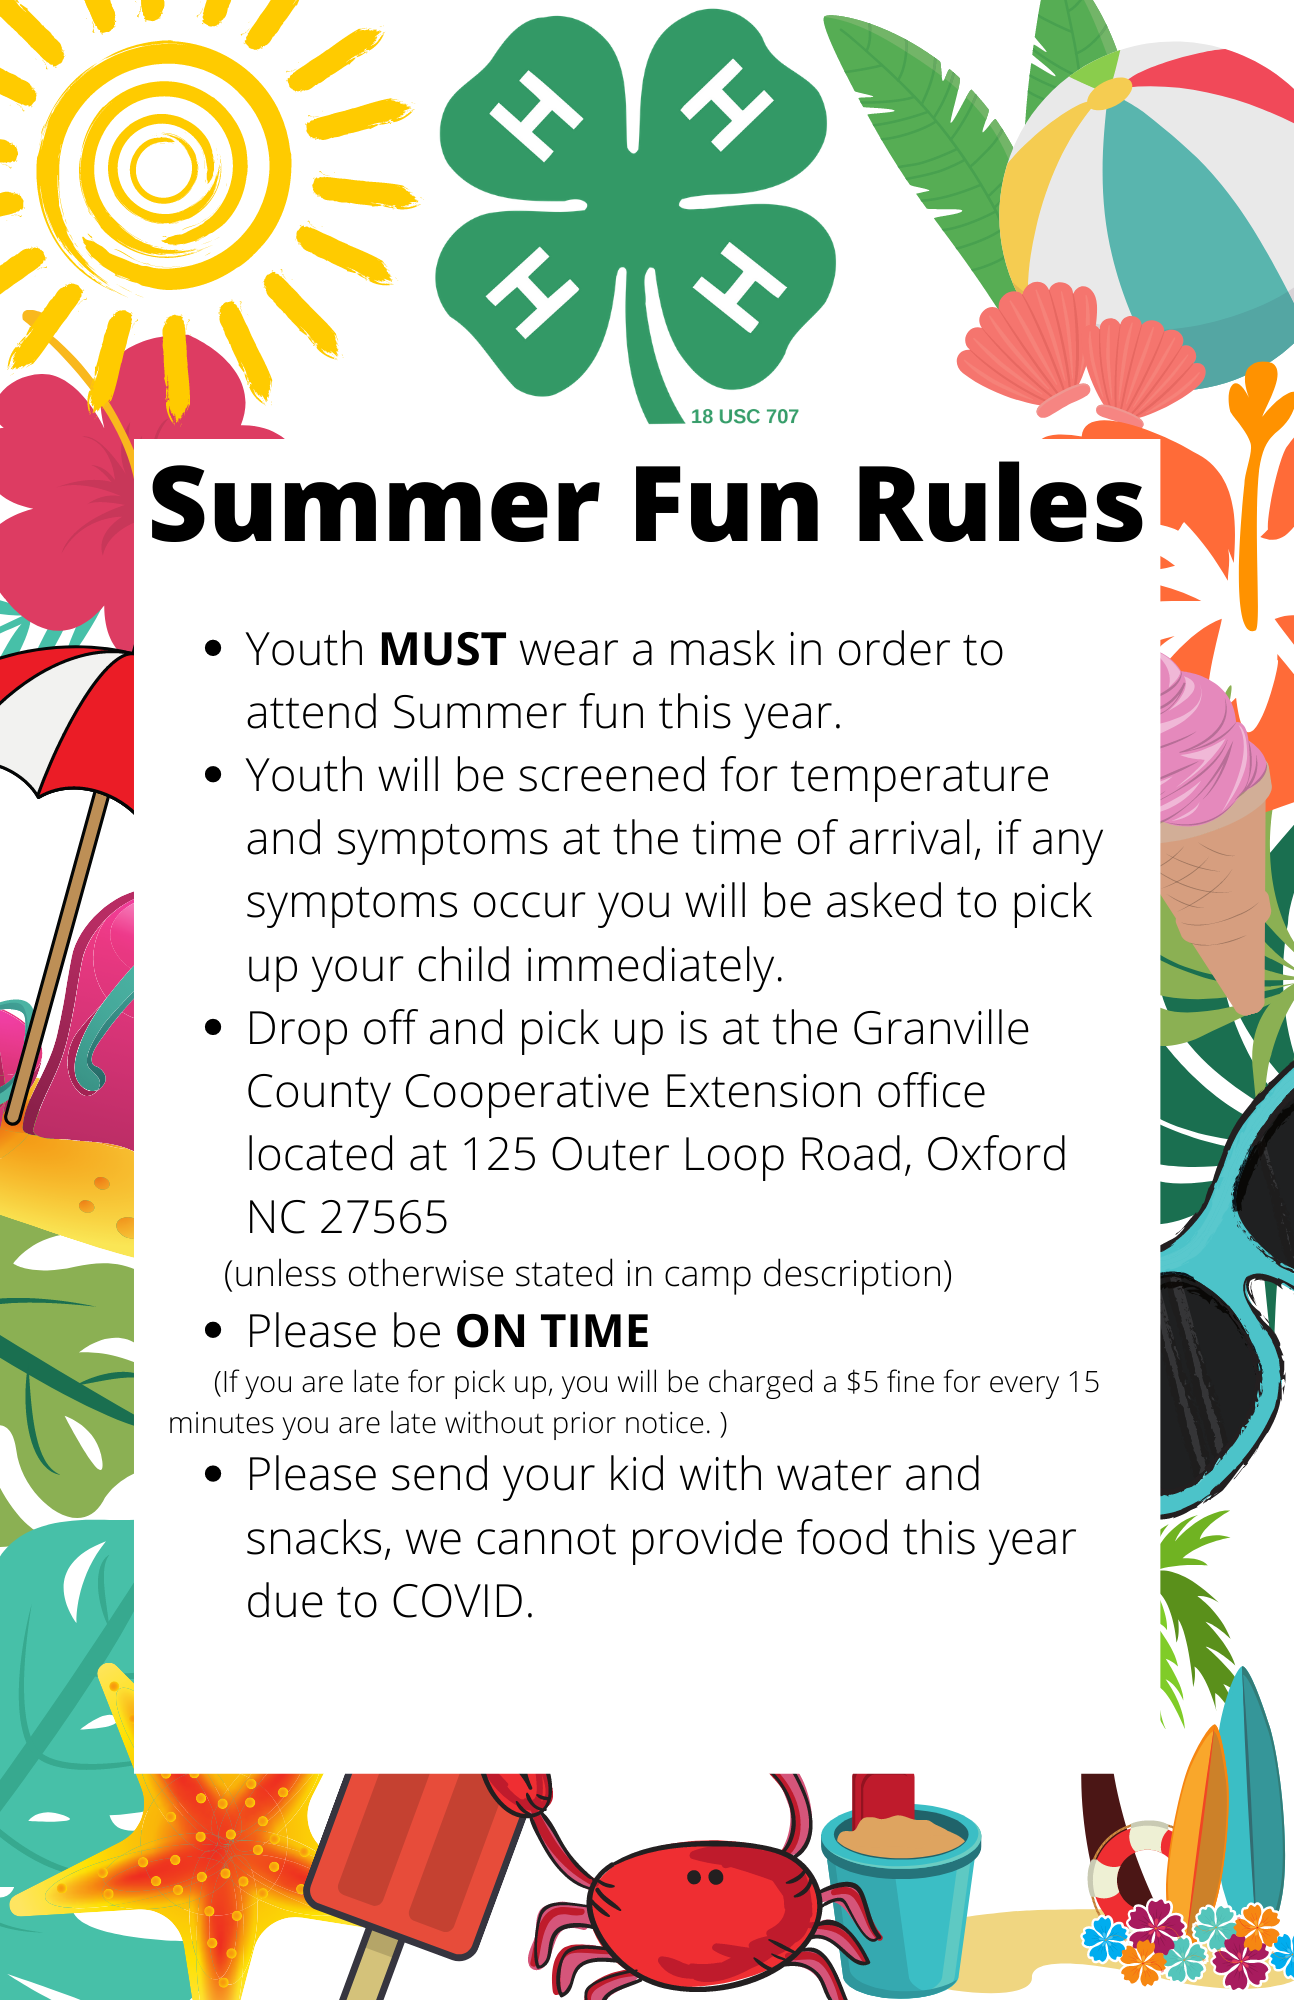 Summer Fun rules flyer image